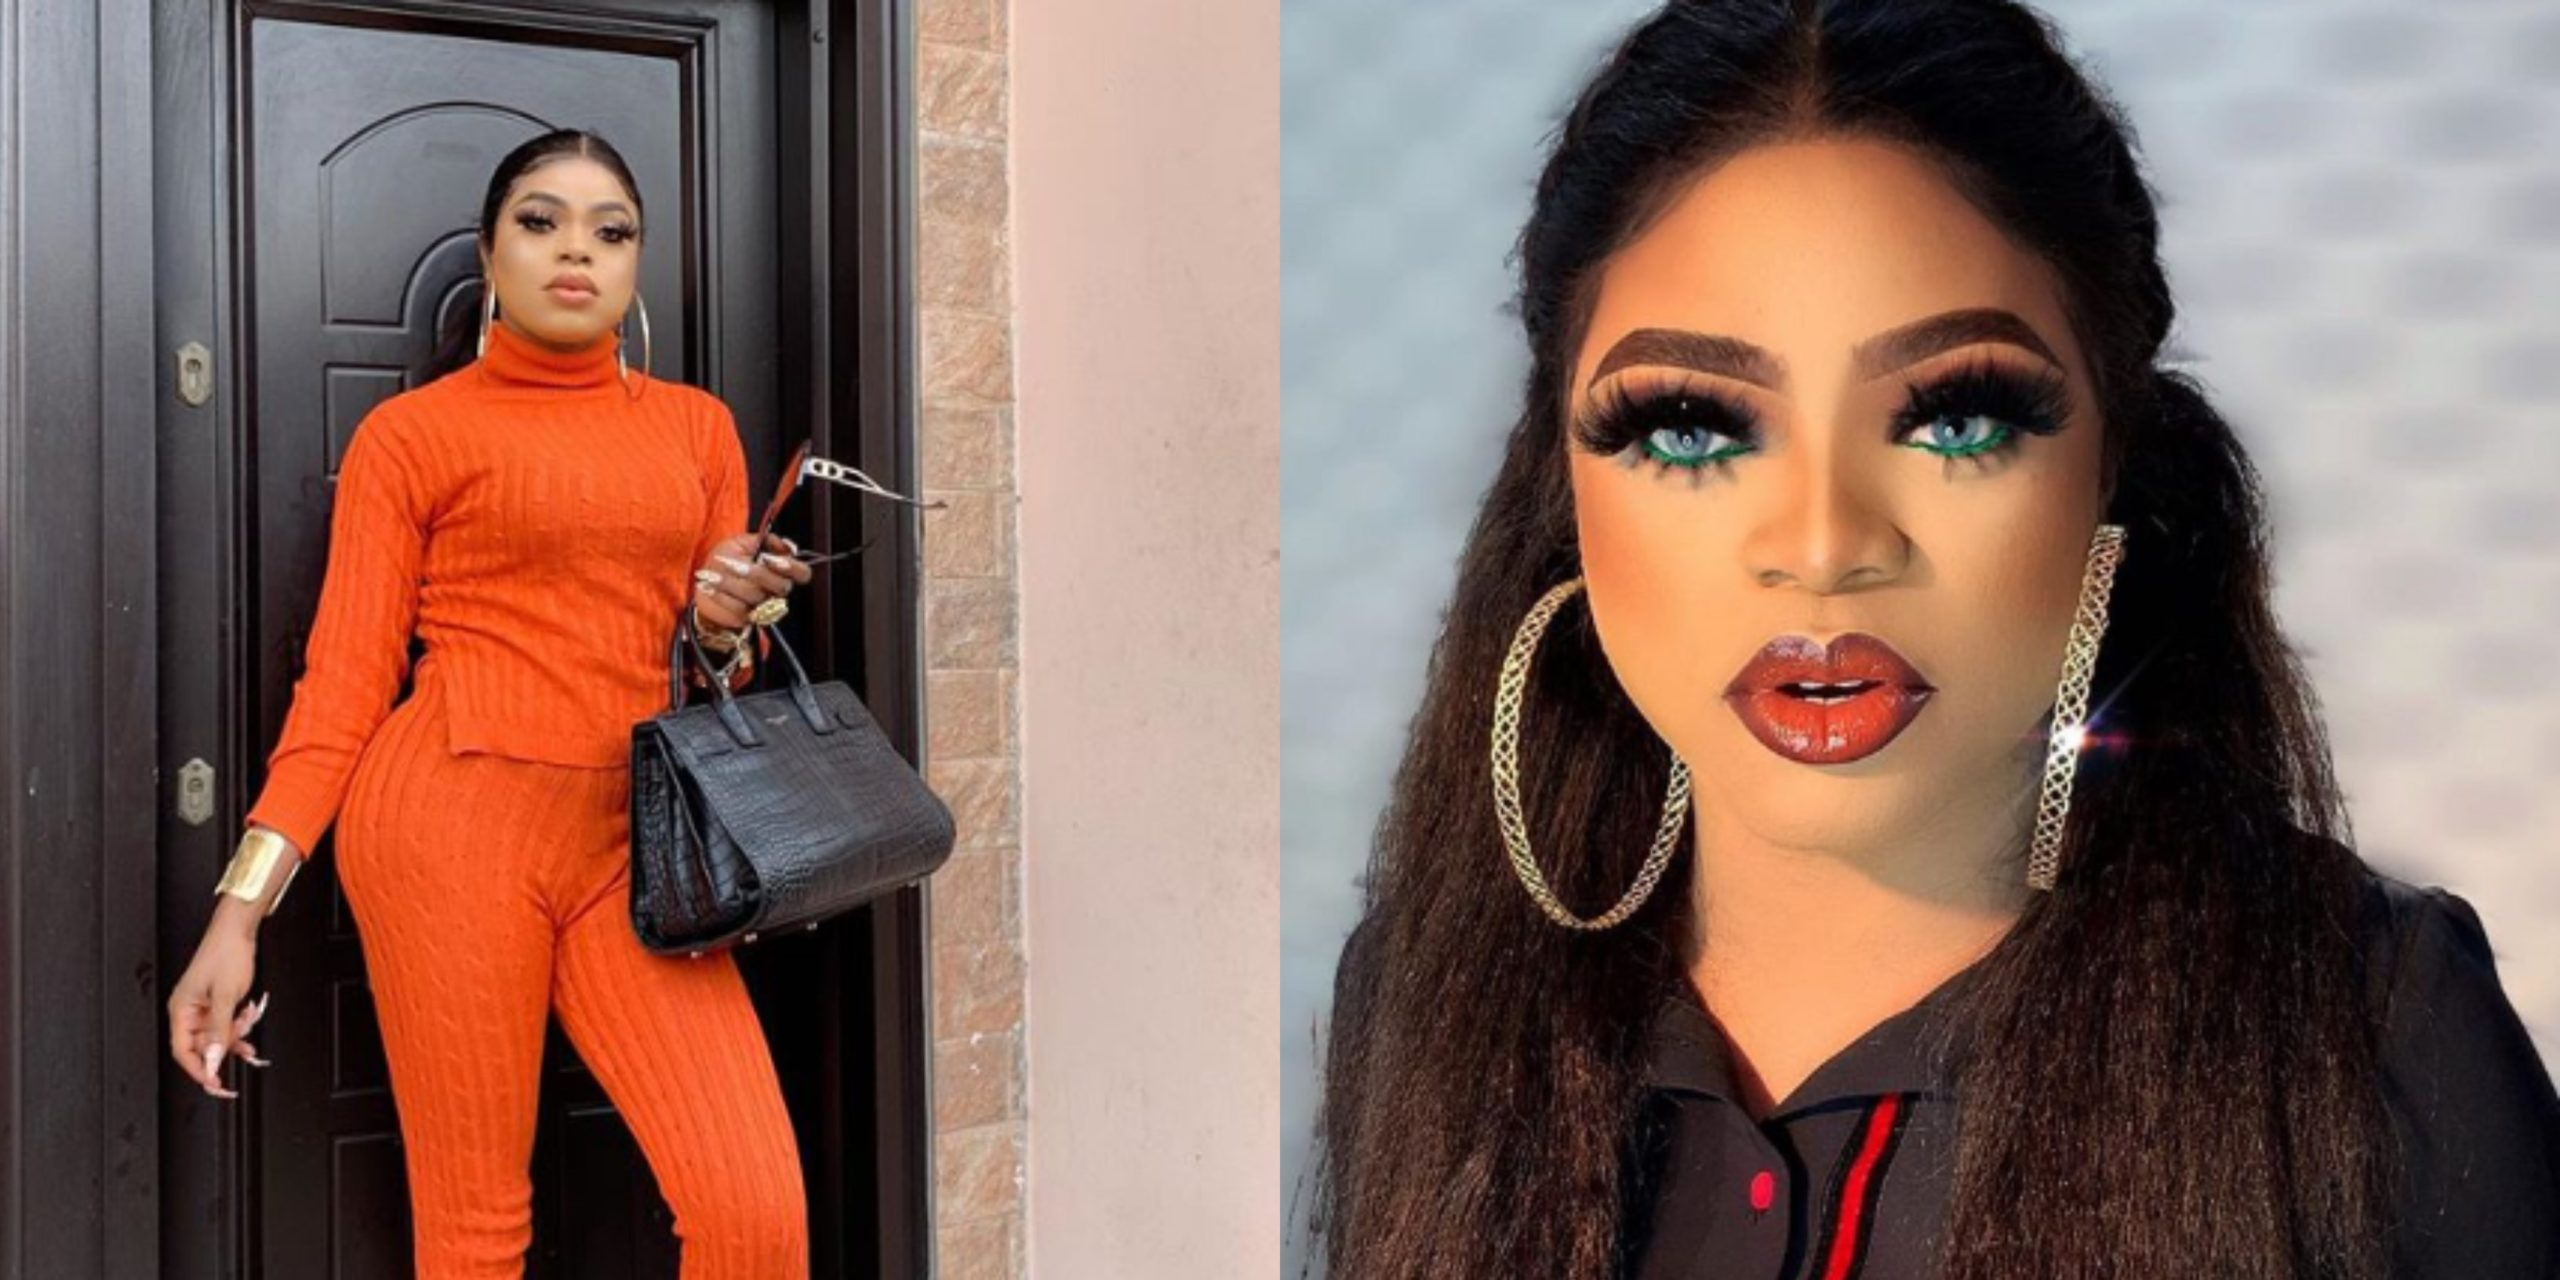 Bobrisky finally reacts to his arrest rumors as more dirty details emerge